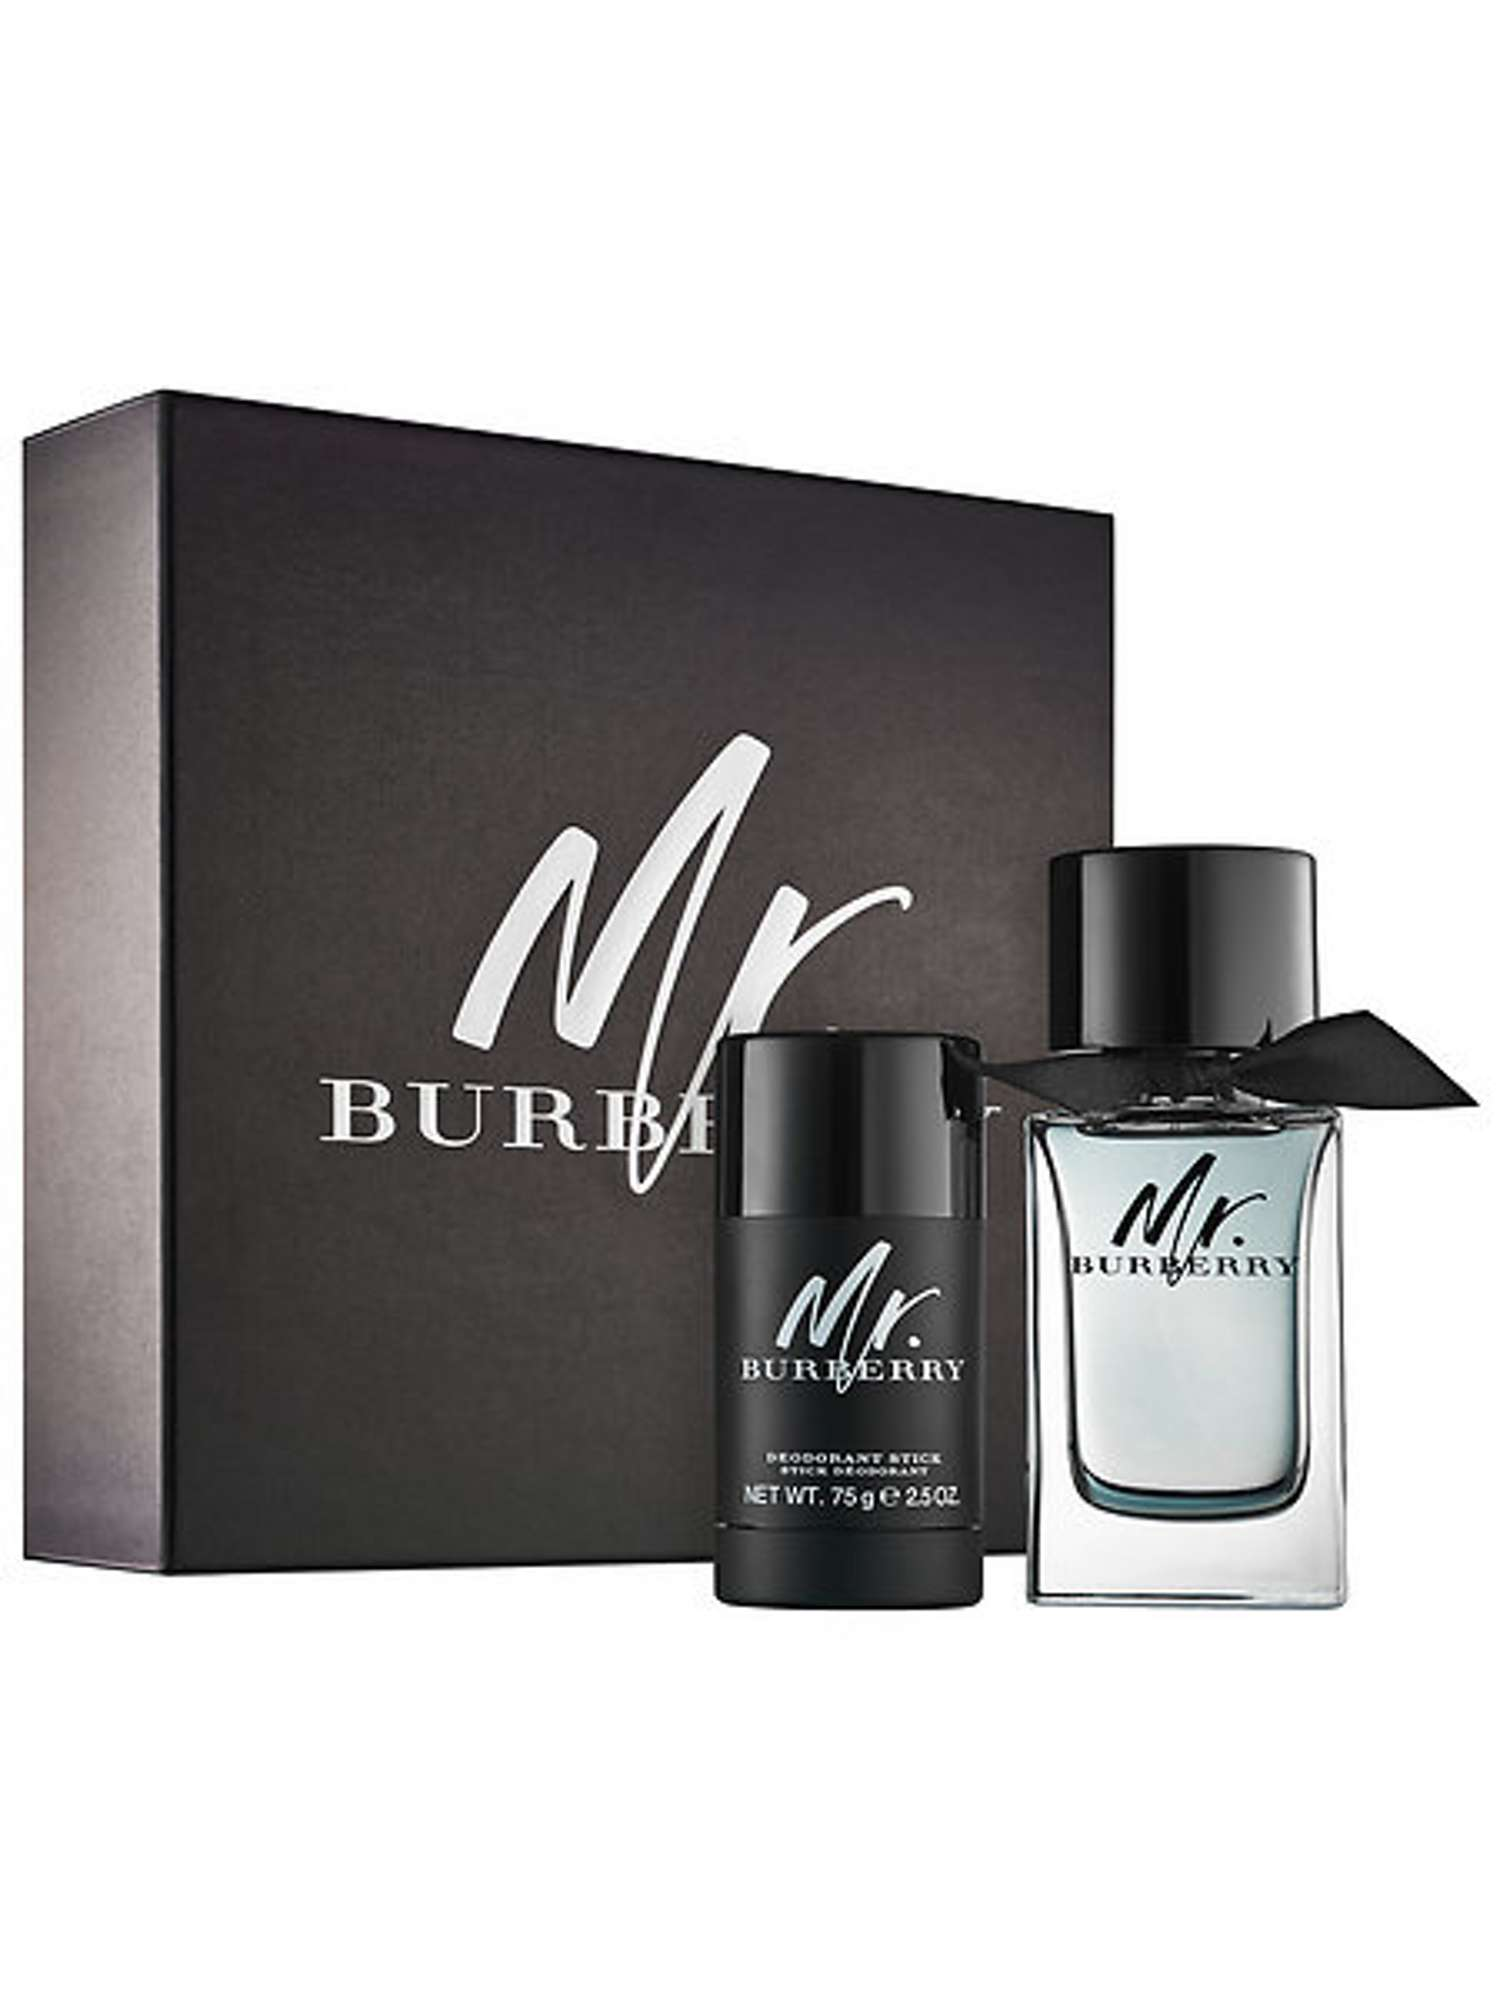 Burberry Mr Burberry Gift Set - Eau de Toilette For Men 100 ml